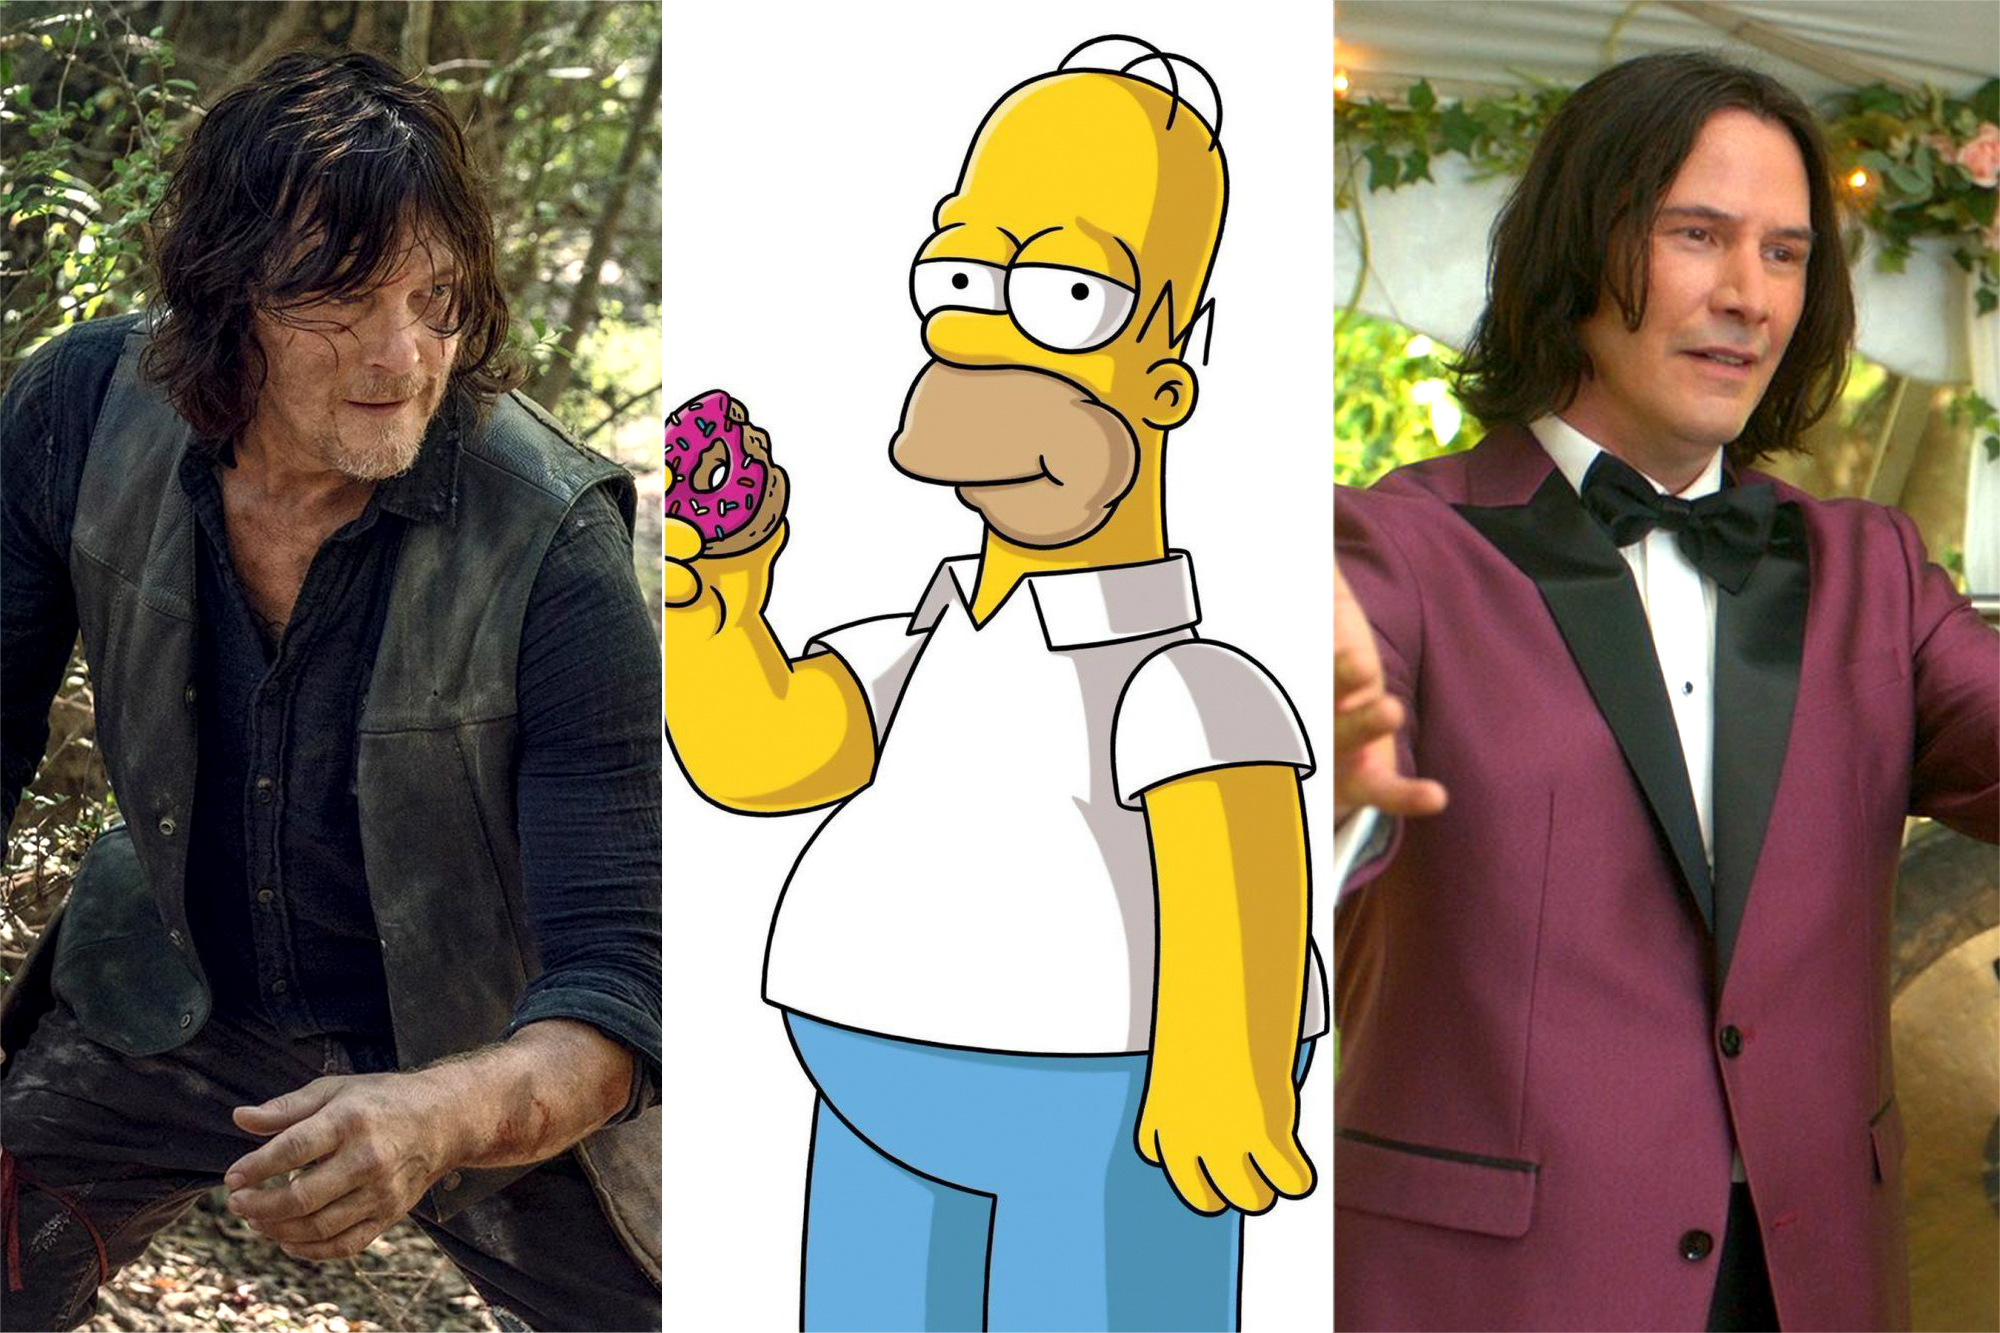 The Walking Dead, The Simpsons, Bill and Ted Face the Music